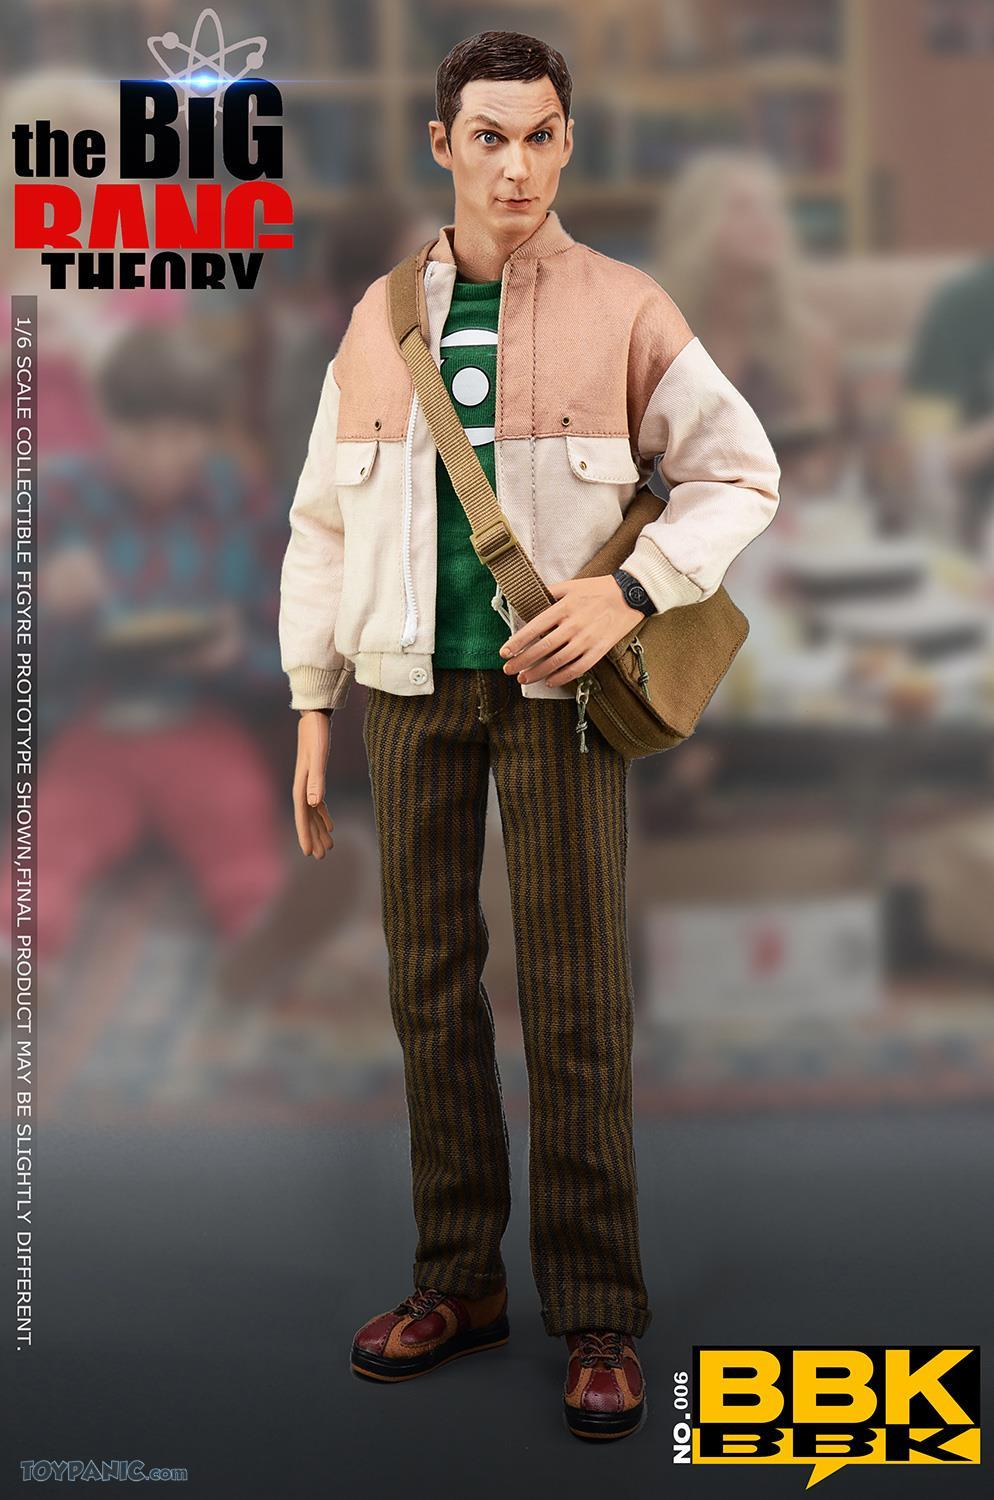 bbk - NEW PRODUCT: BBK: 1/6 scale The Big Bang Theory Sheldon Cooper Action Figure (BBK06) 49201910